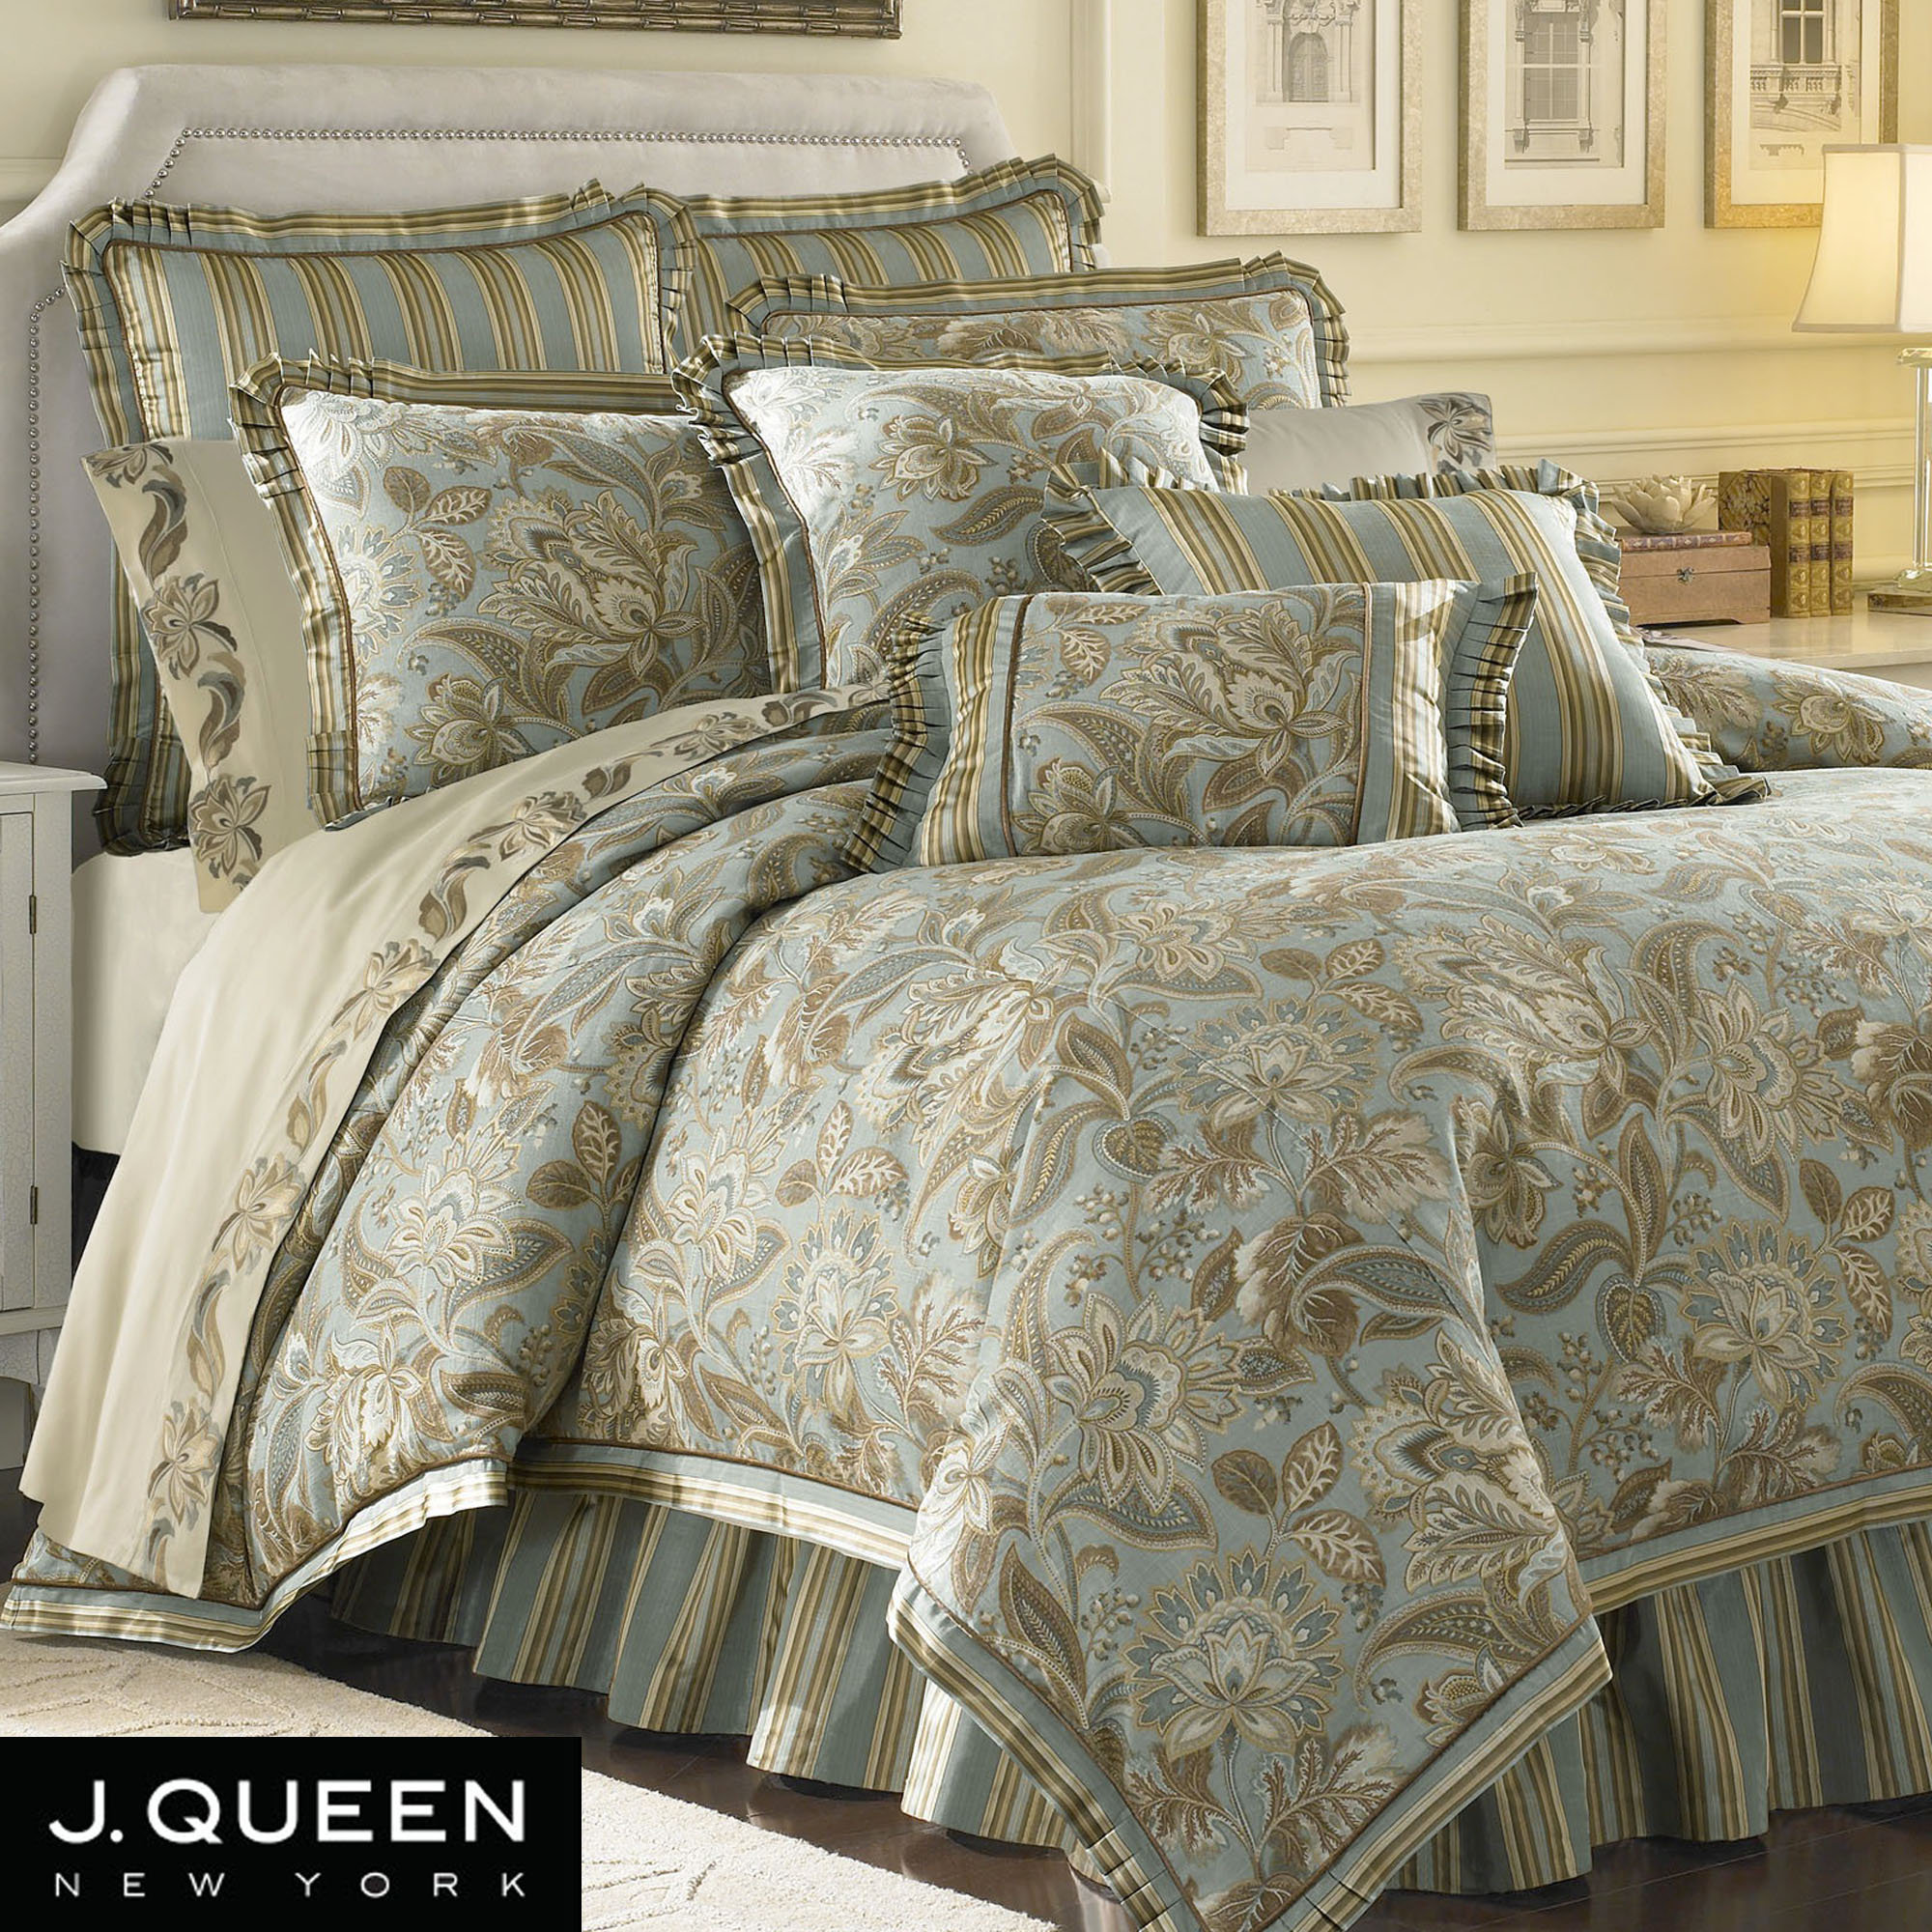 Luxury Comforter Sets | Bed Bath and Beyond Duvet Covers | Comfy Comforter